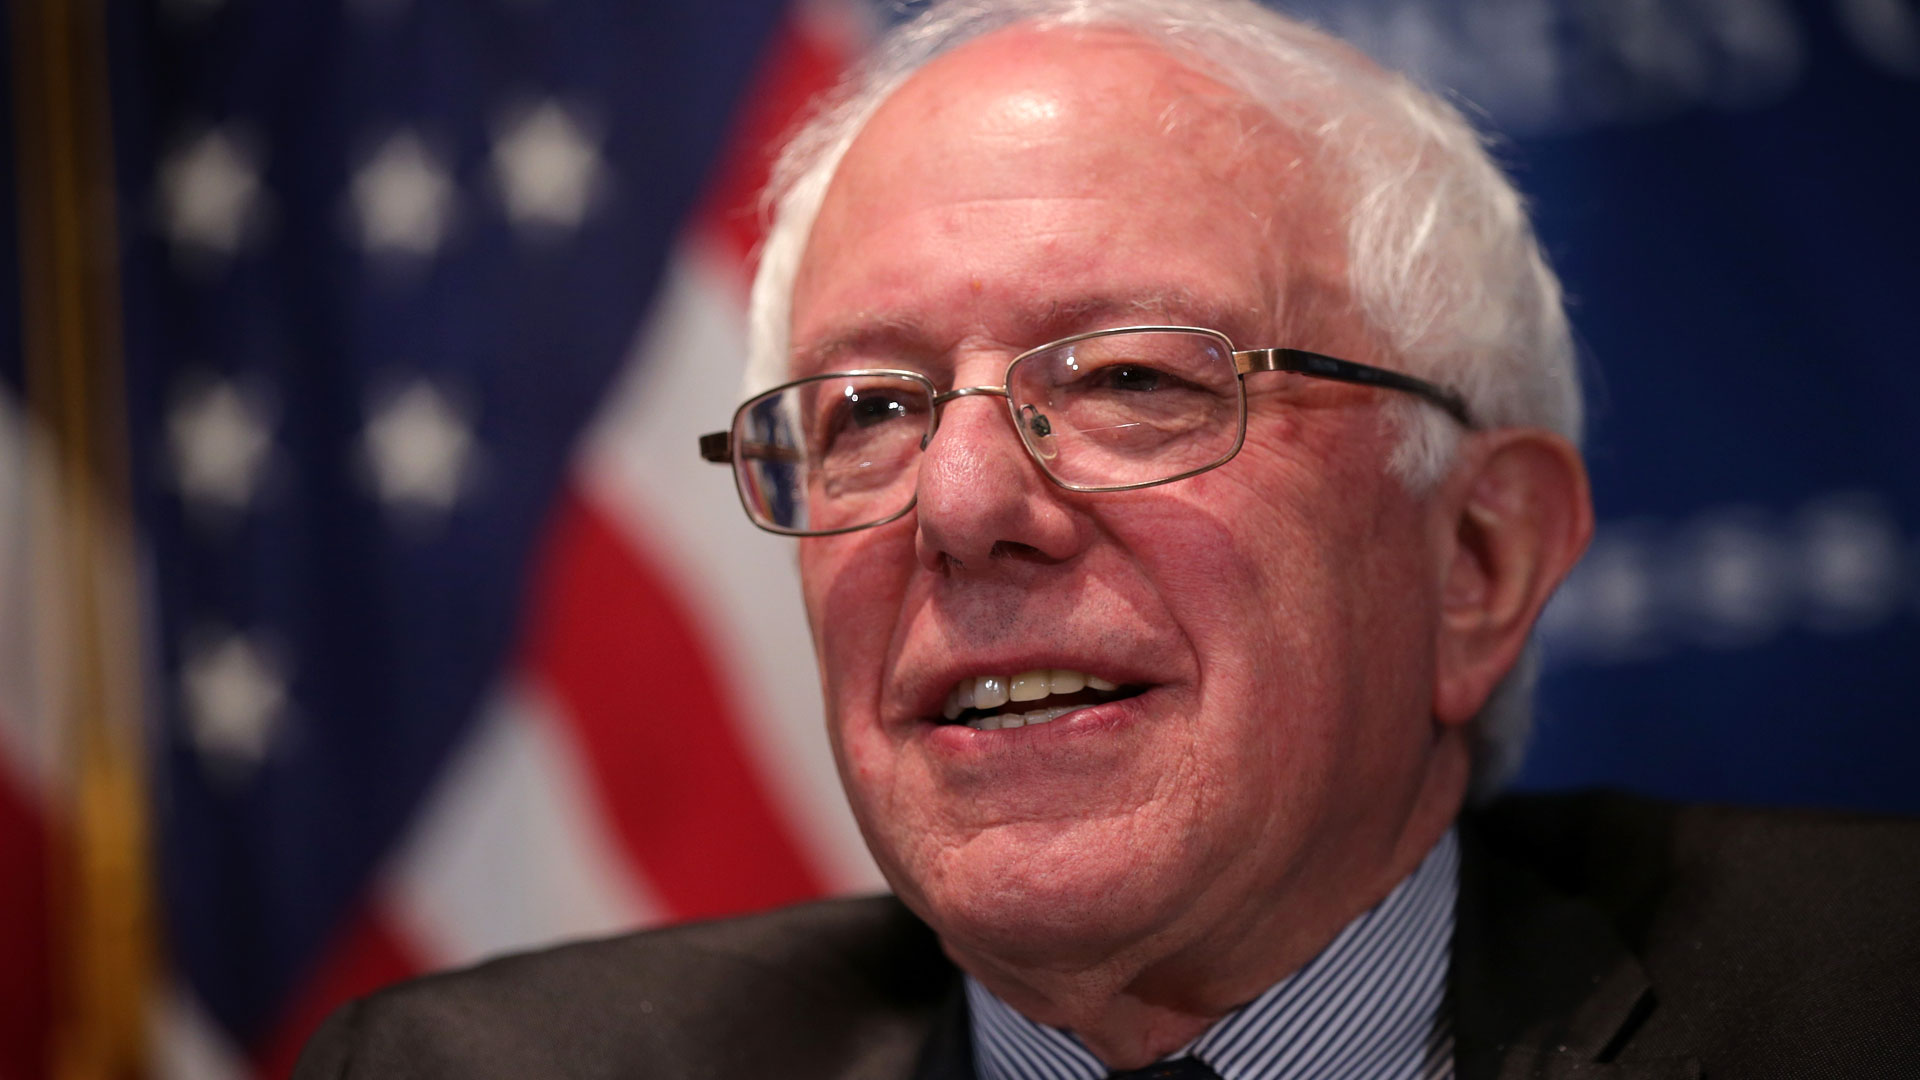 Here's a List of Bernie Sanders' $19.6 Trillion in Tax Hikes